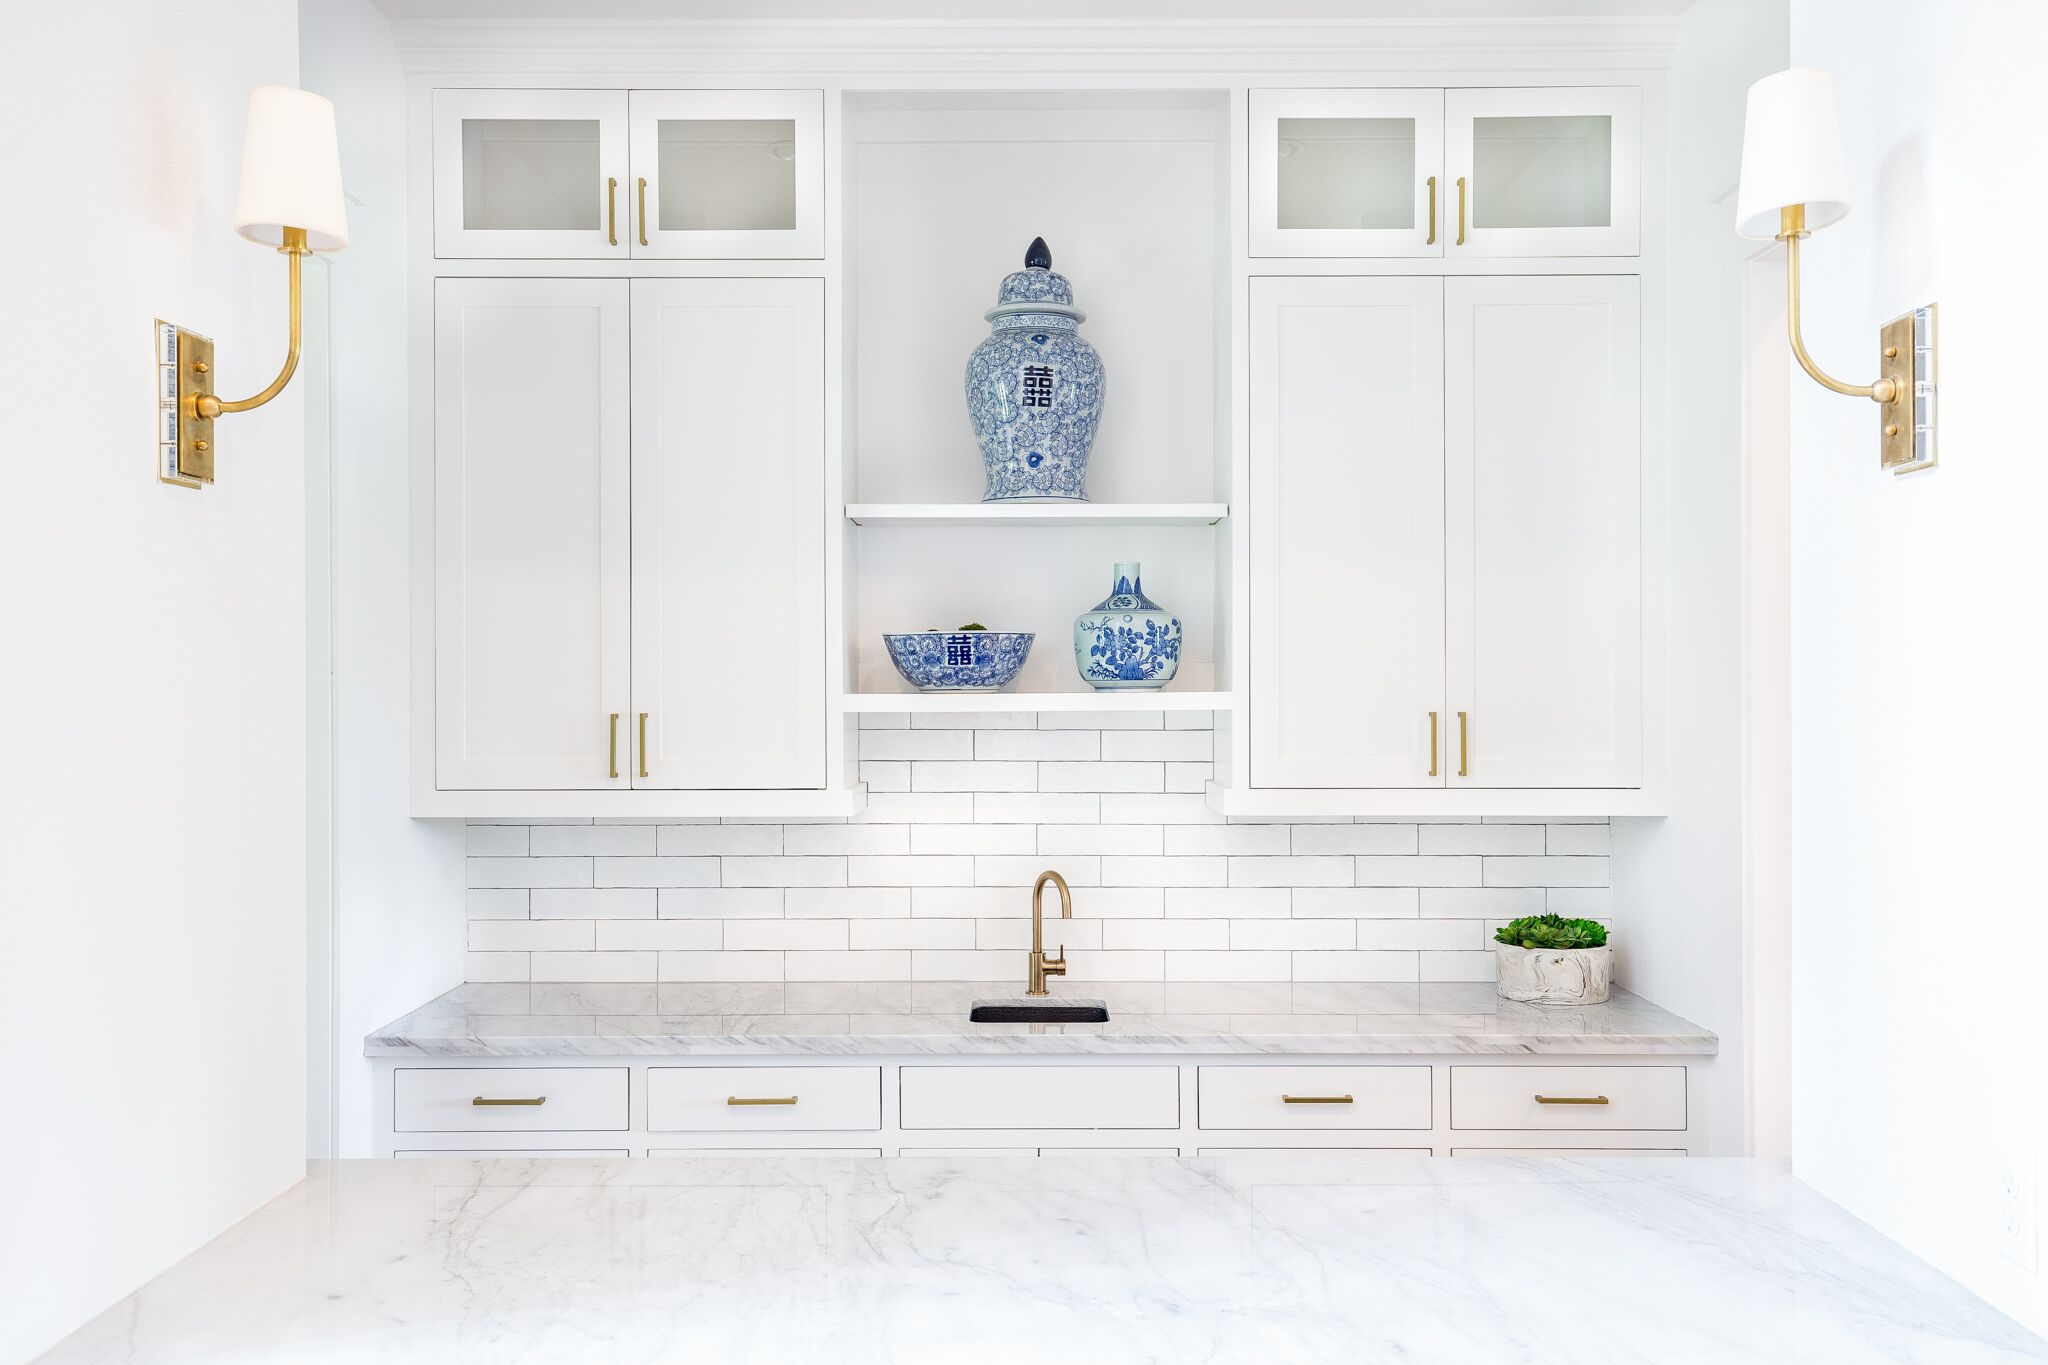 Come see this modern farmhouse featuring a built in wet bar off of the living room with gold cabinet hardware and a long white subway tile backsplash.